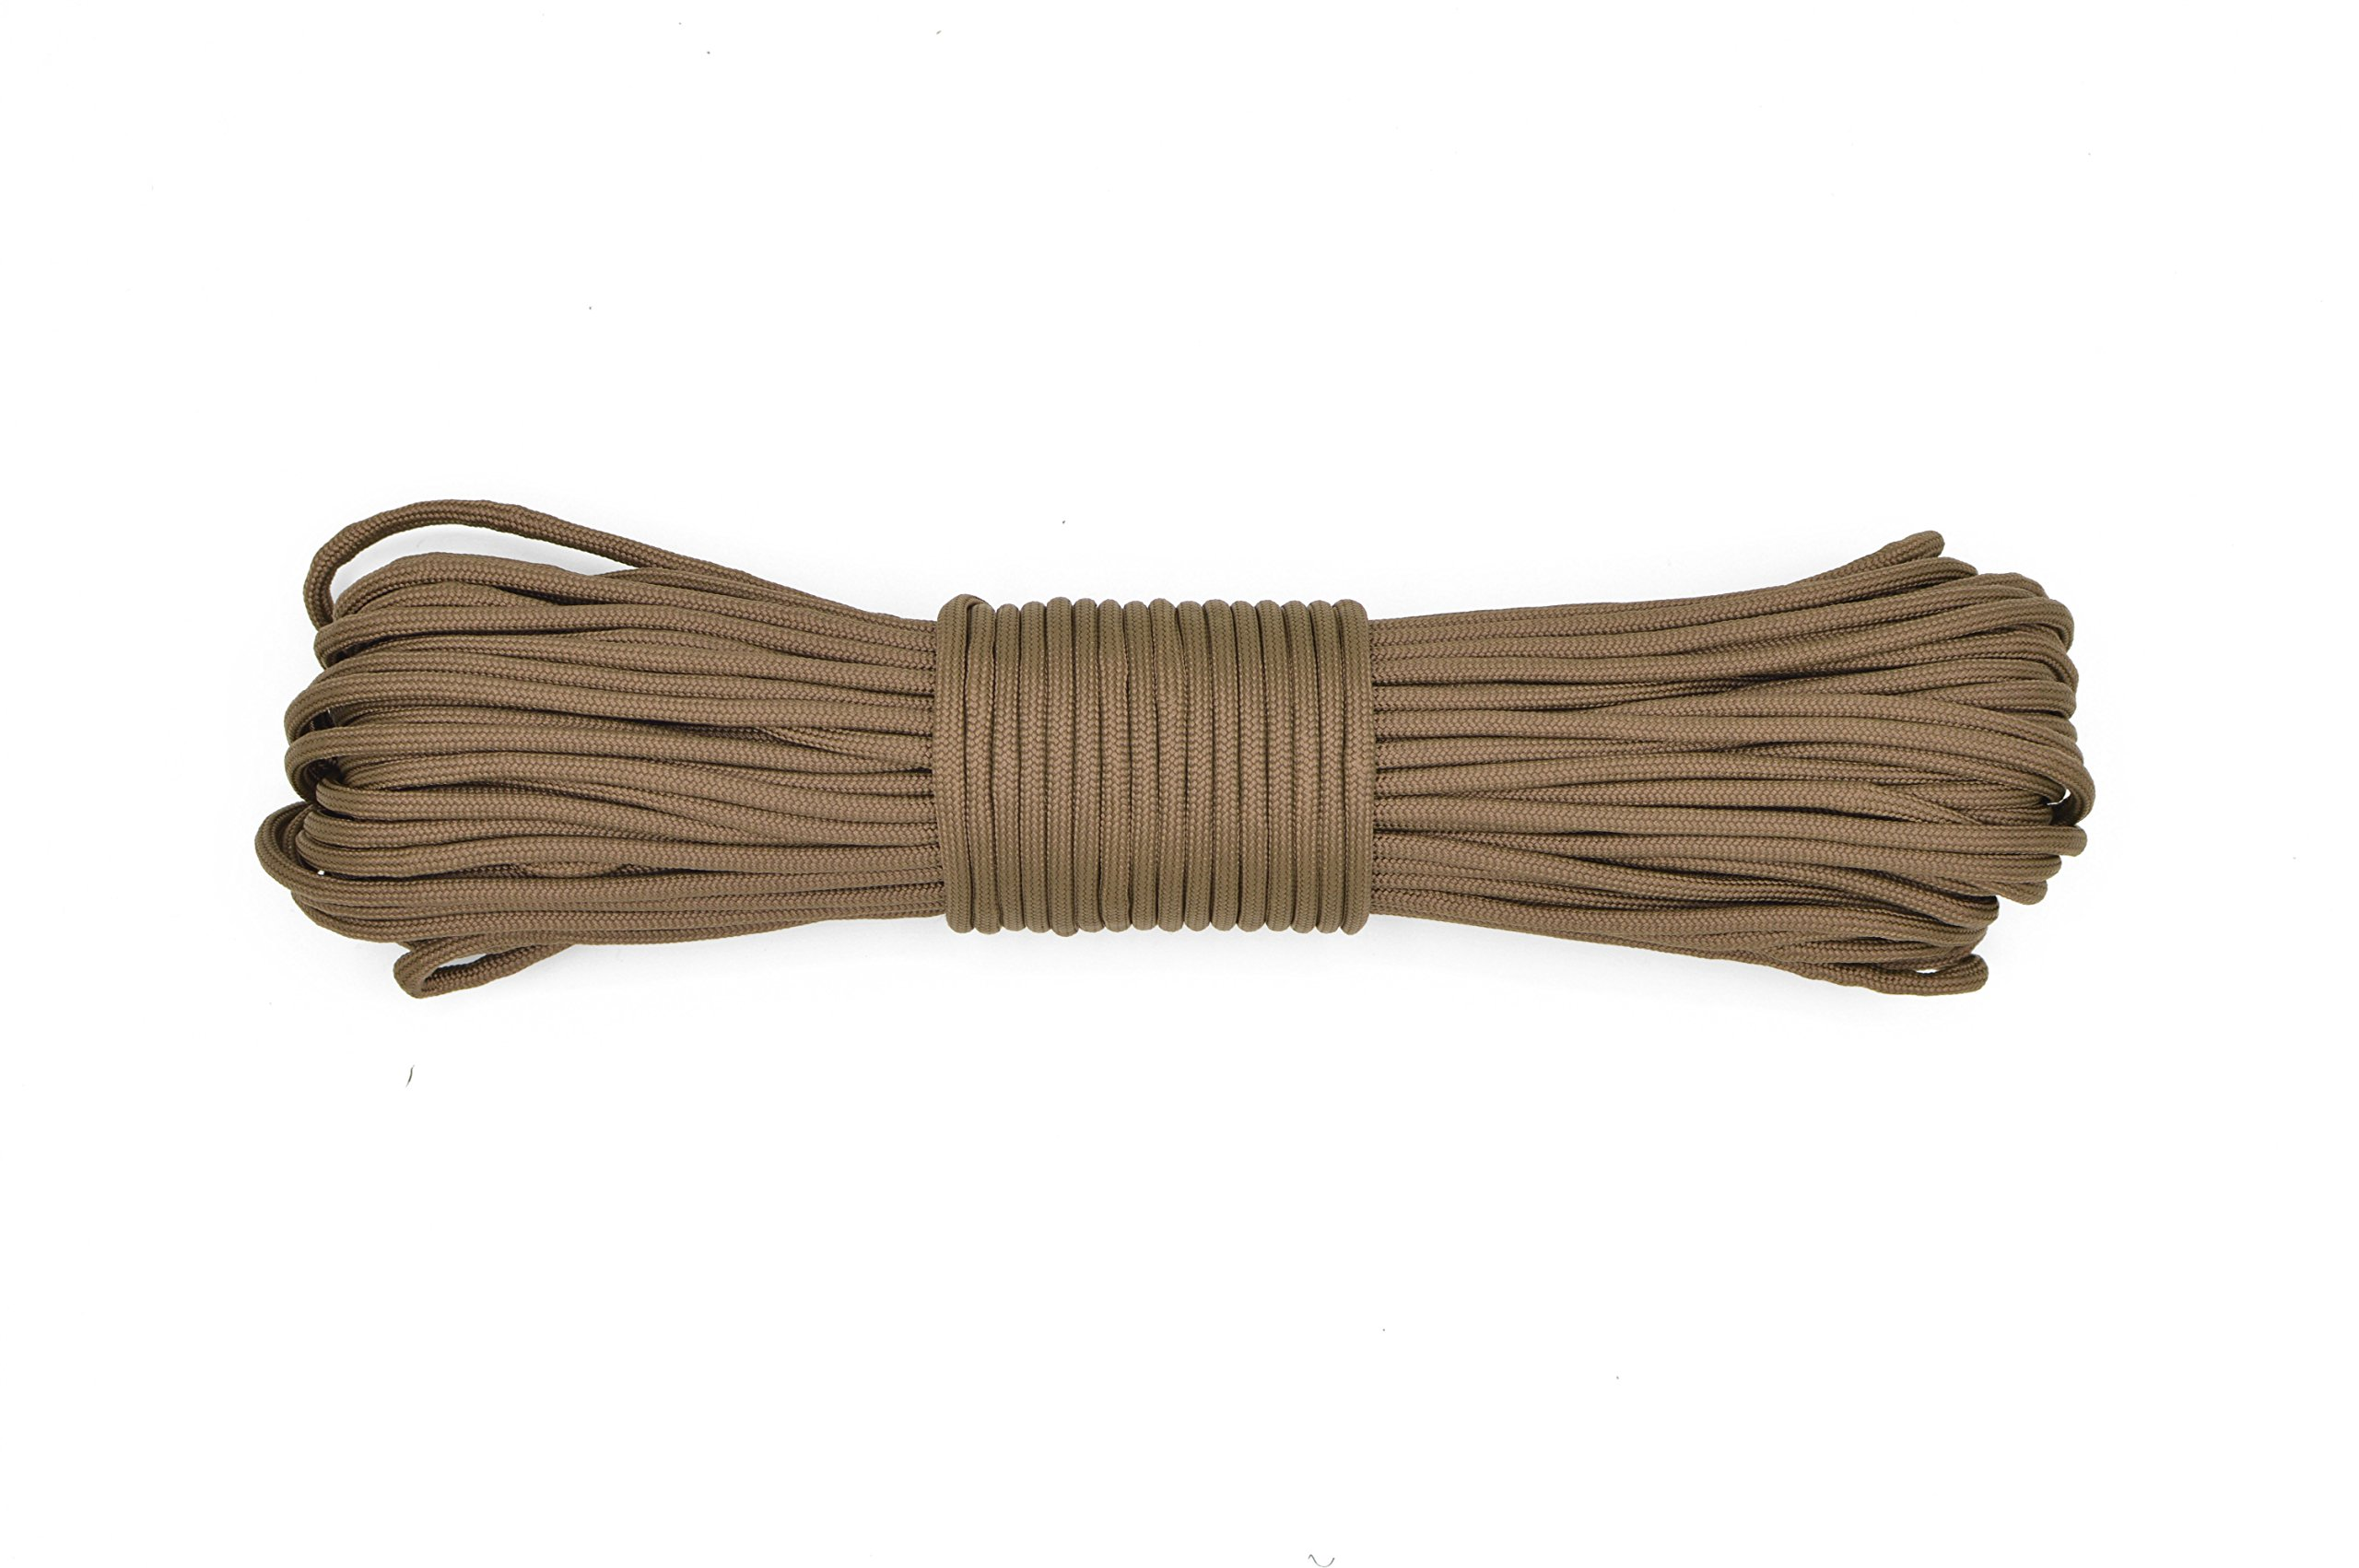 Paracord Rope 550 Type III Paracord - Parachute Cord - 550lb Tensile Strength - 100% Nylon - Made In The USA (Chocolate Brown, 50 Feet)